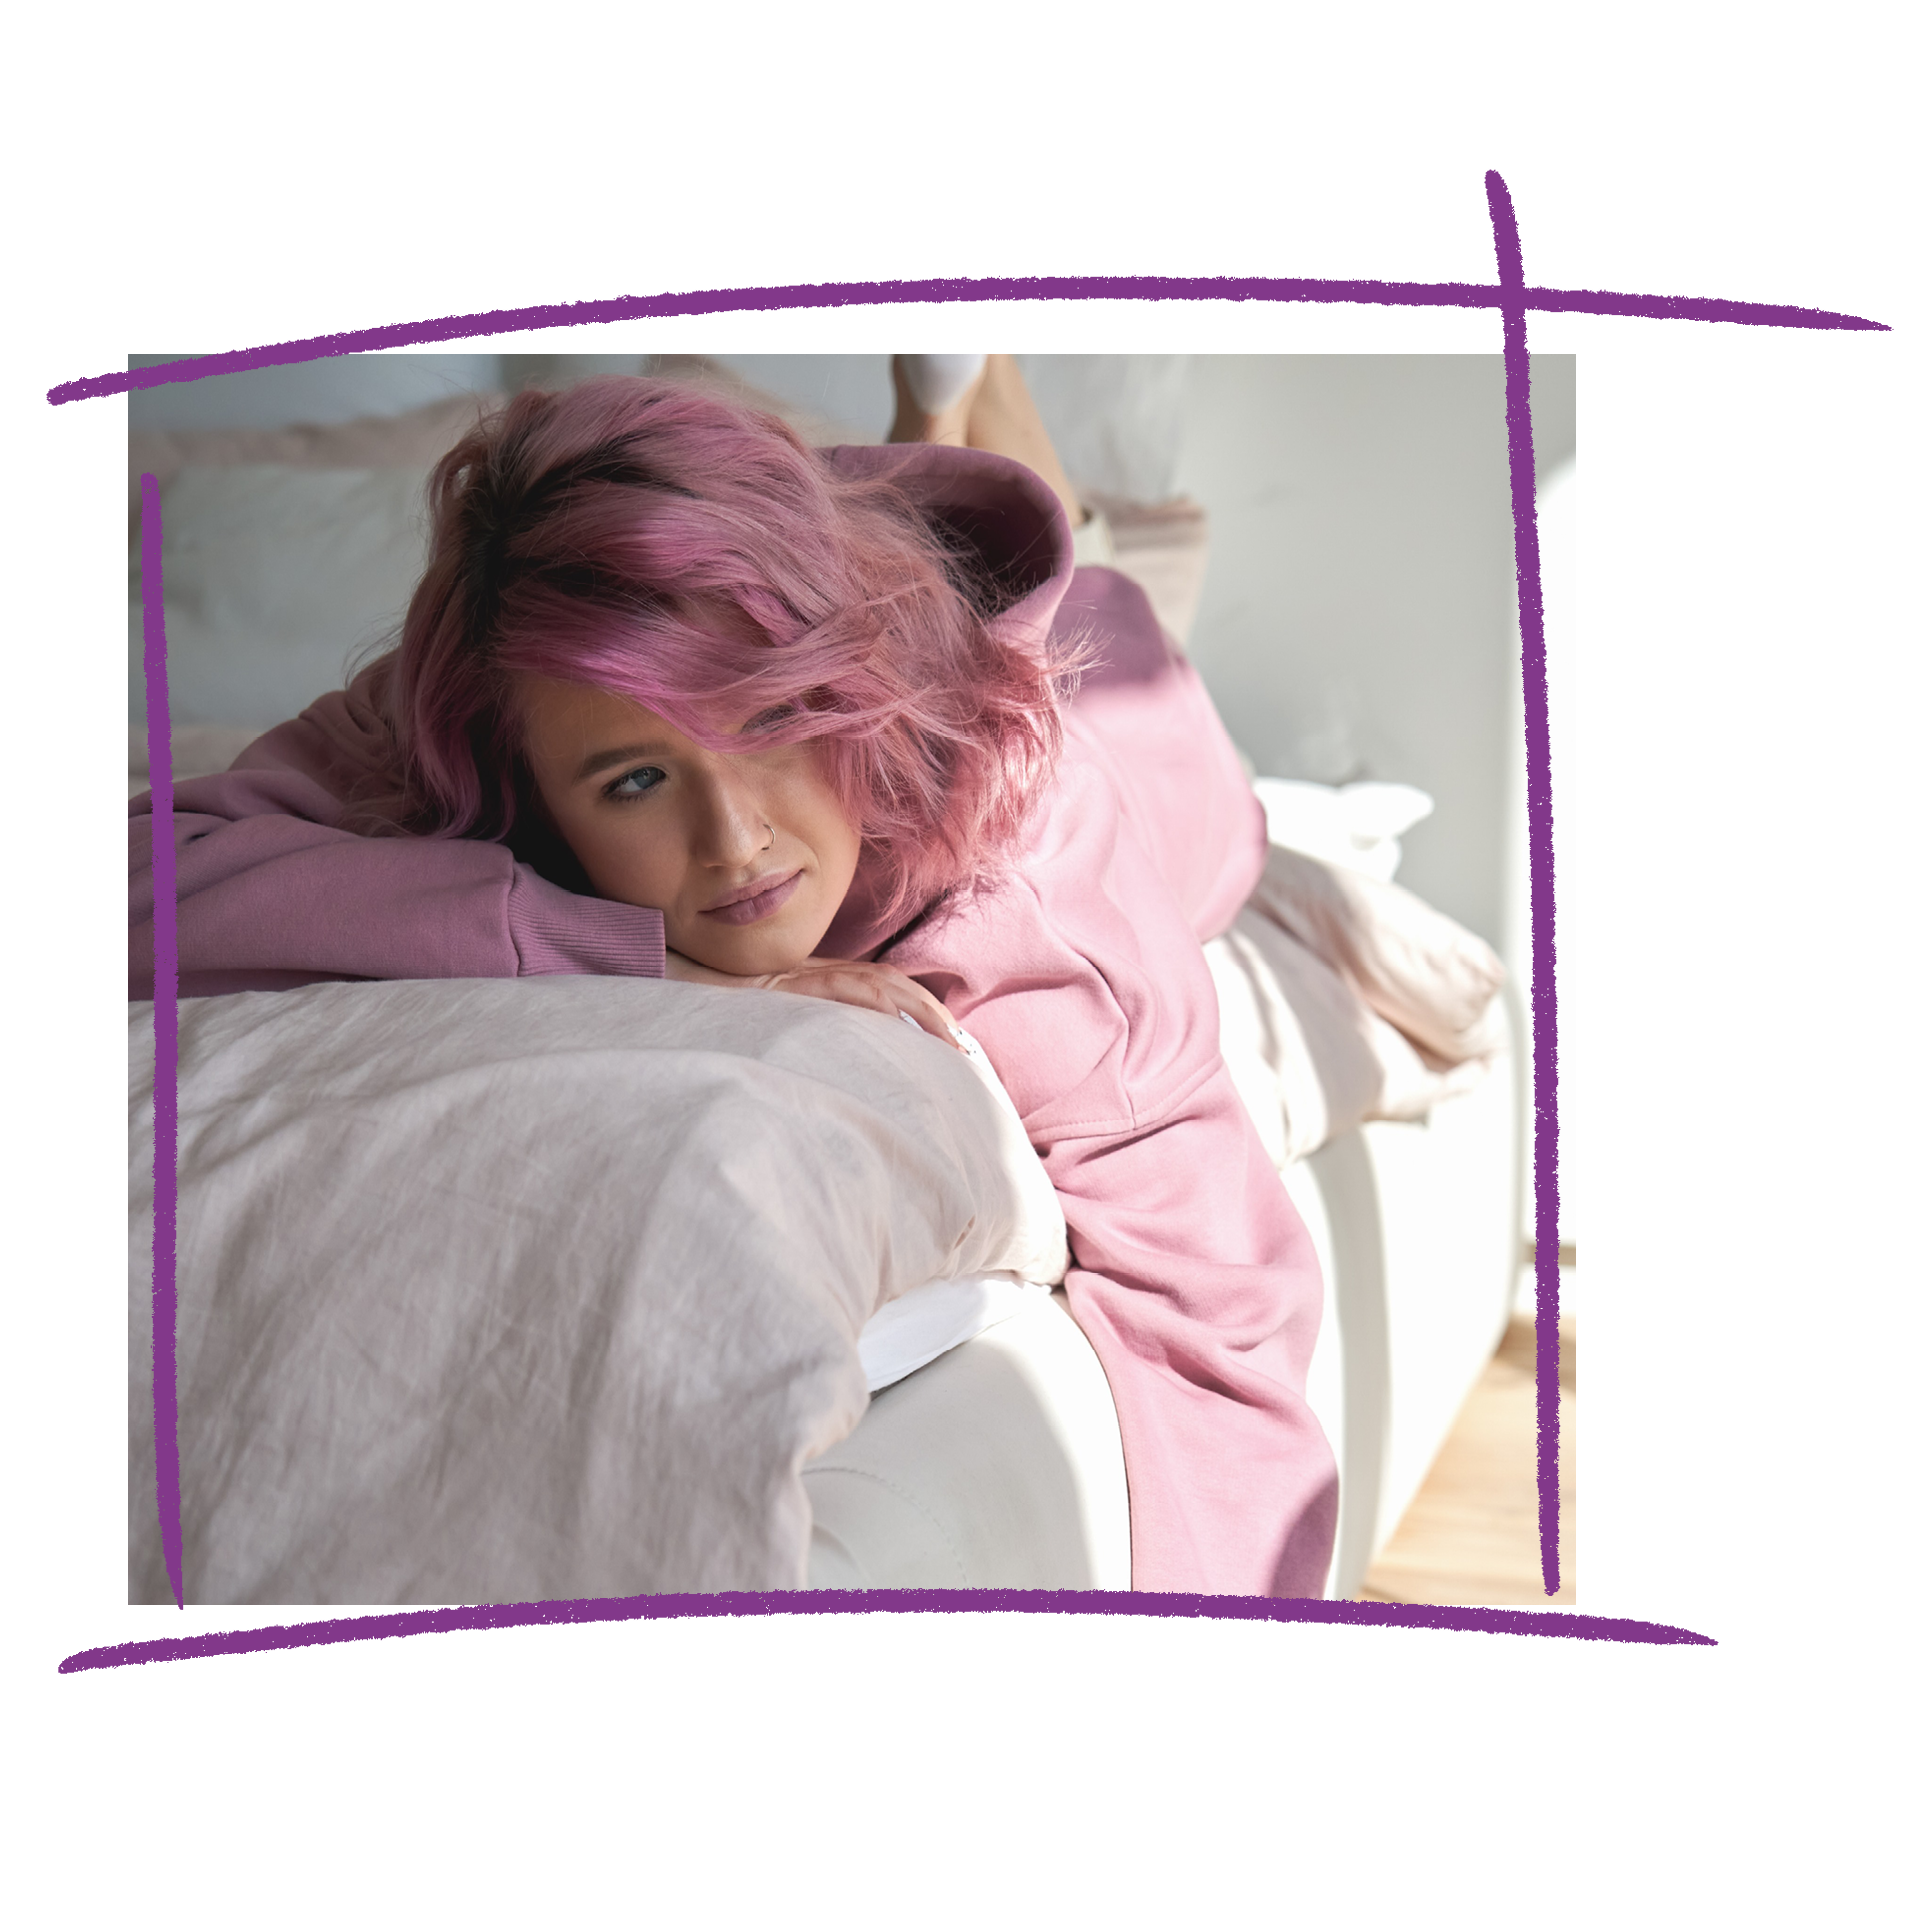 A woman with pink hair wearing a pink jumper lying on a couch.